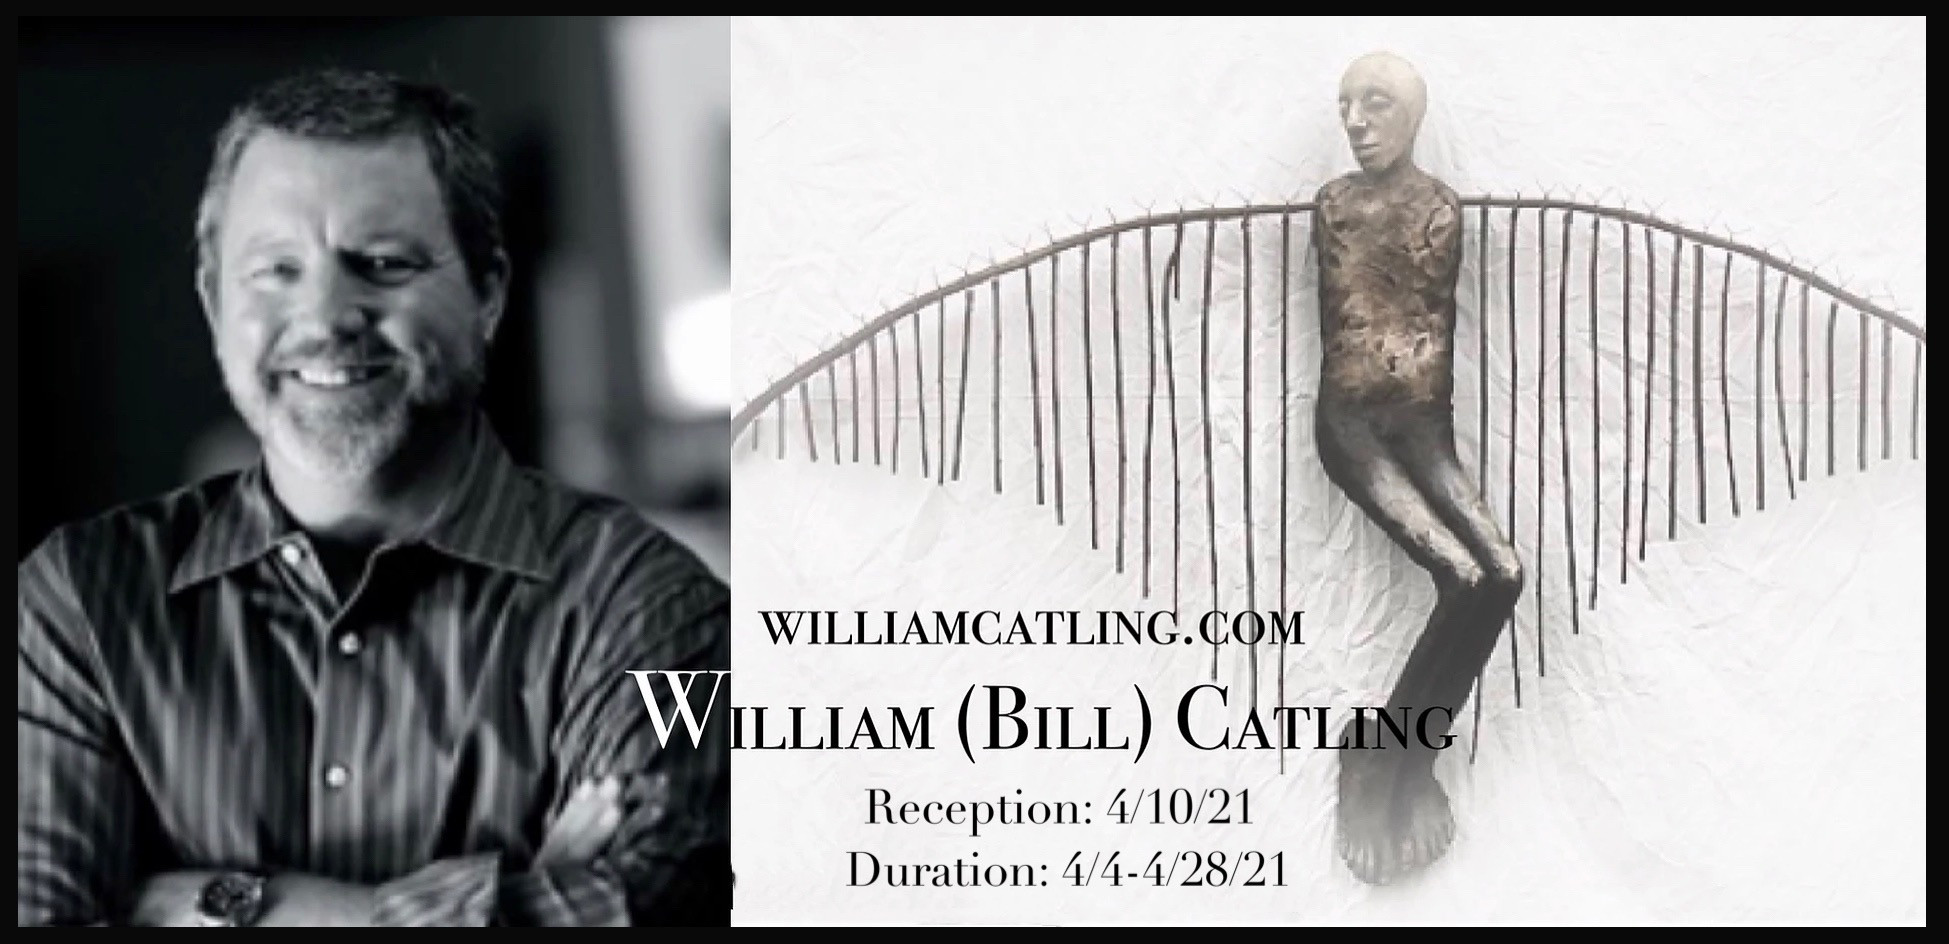 William (Bill) Catling's solo exhibition